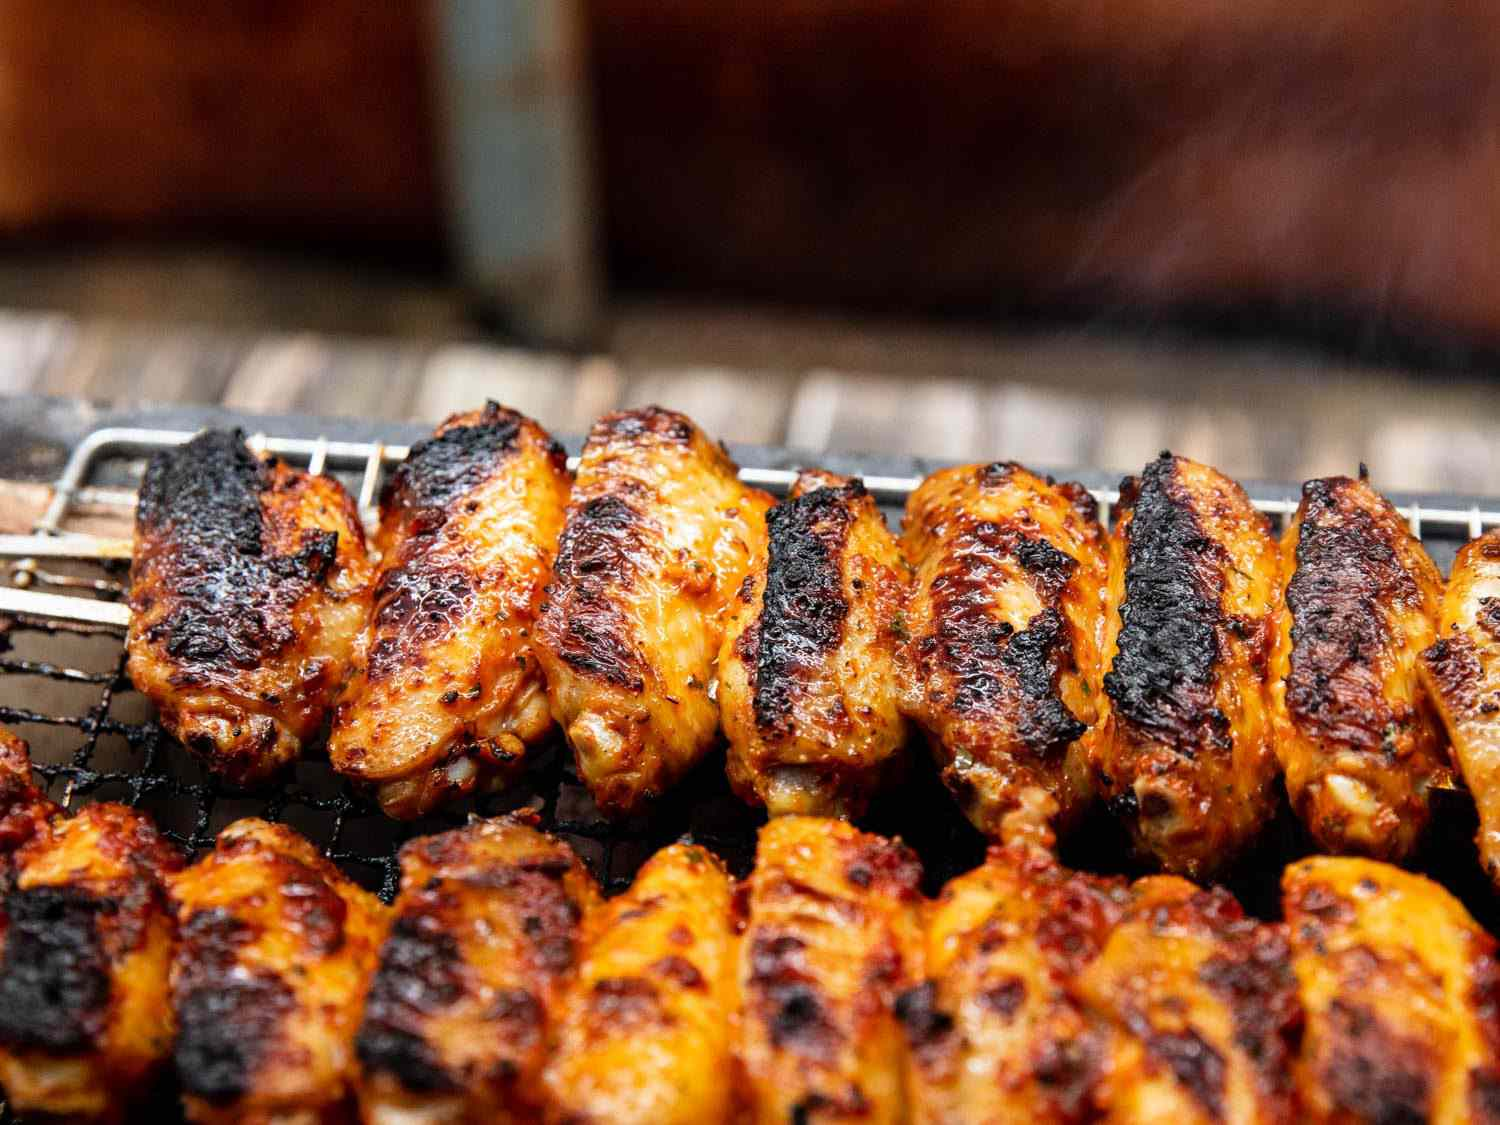 Closeup of Turkish-style wings grilling on a Japanese konro grill